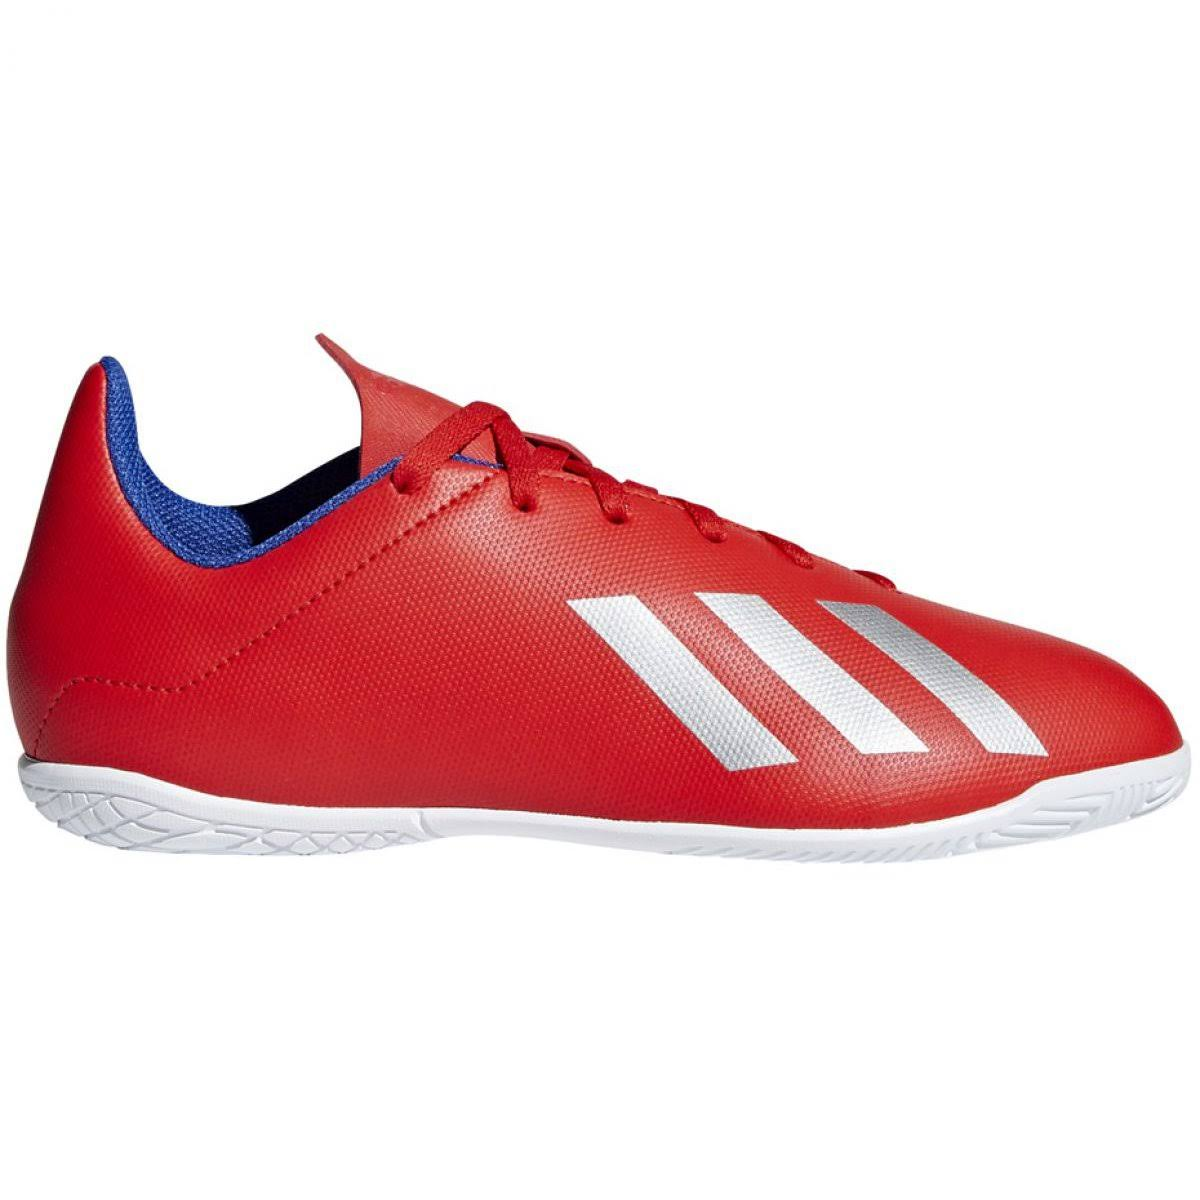 Indoor shoes adidas X 18.4 In Jr BB9410 red multicolored